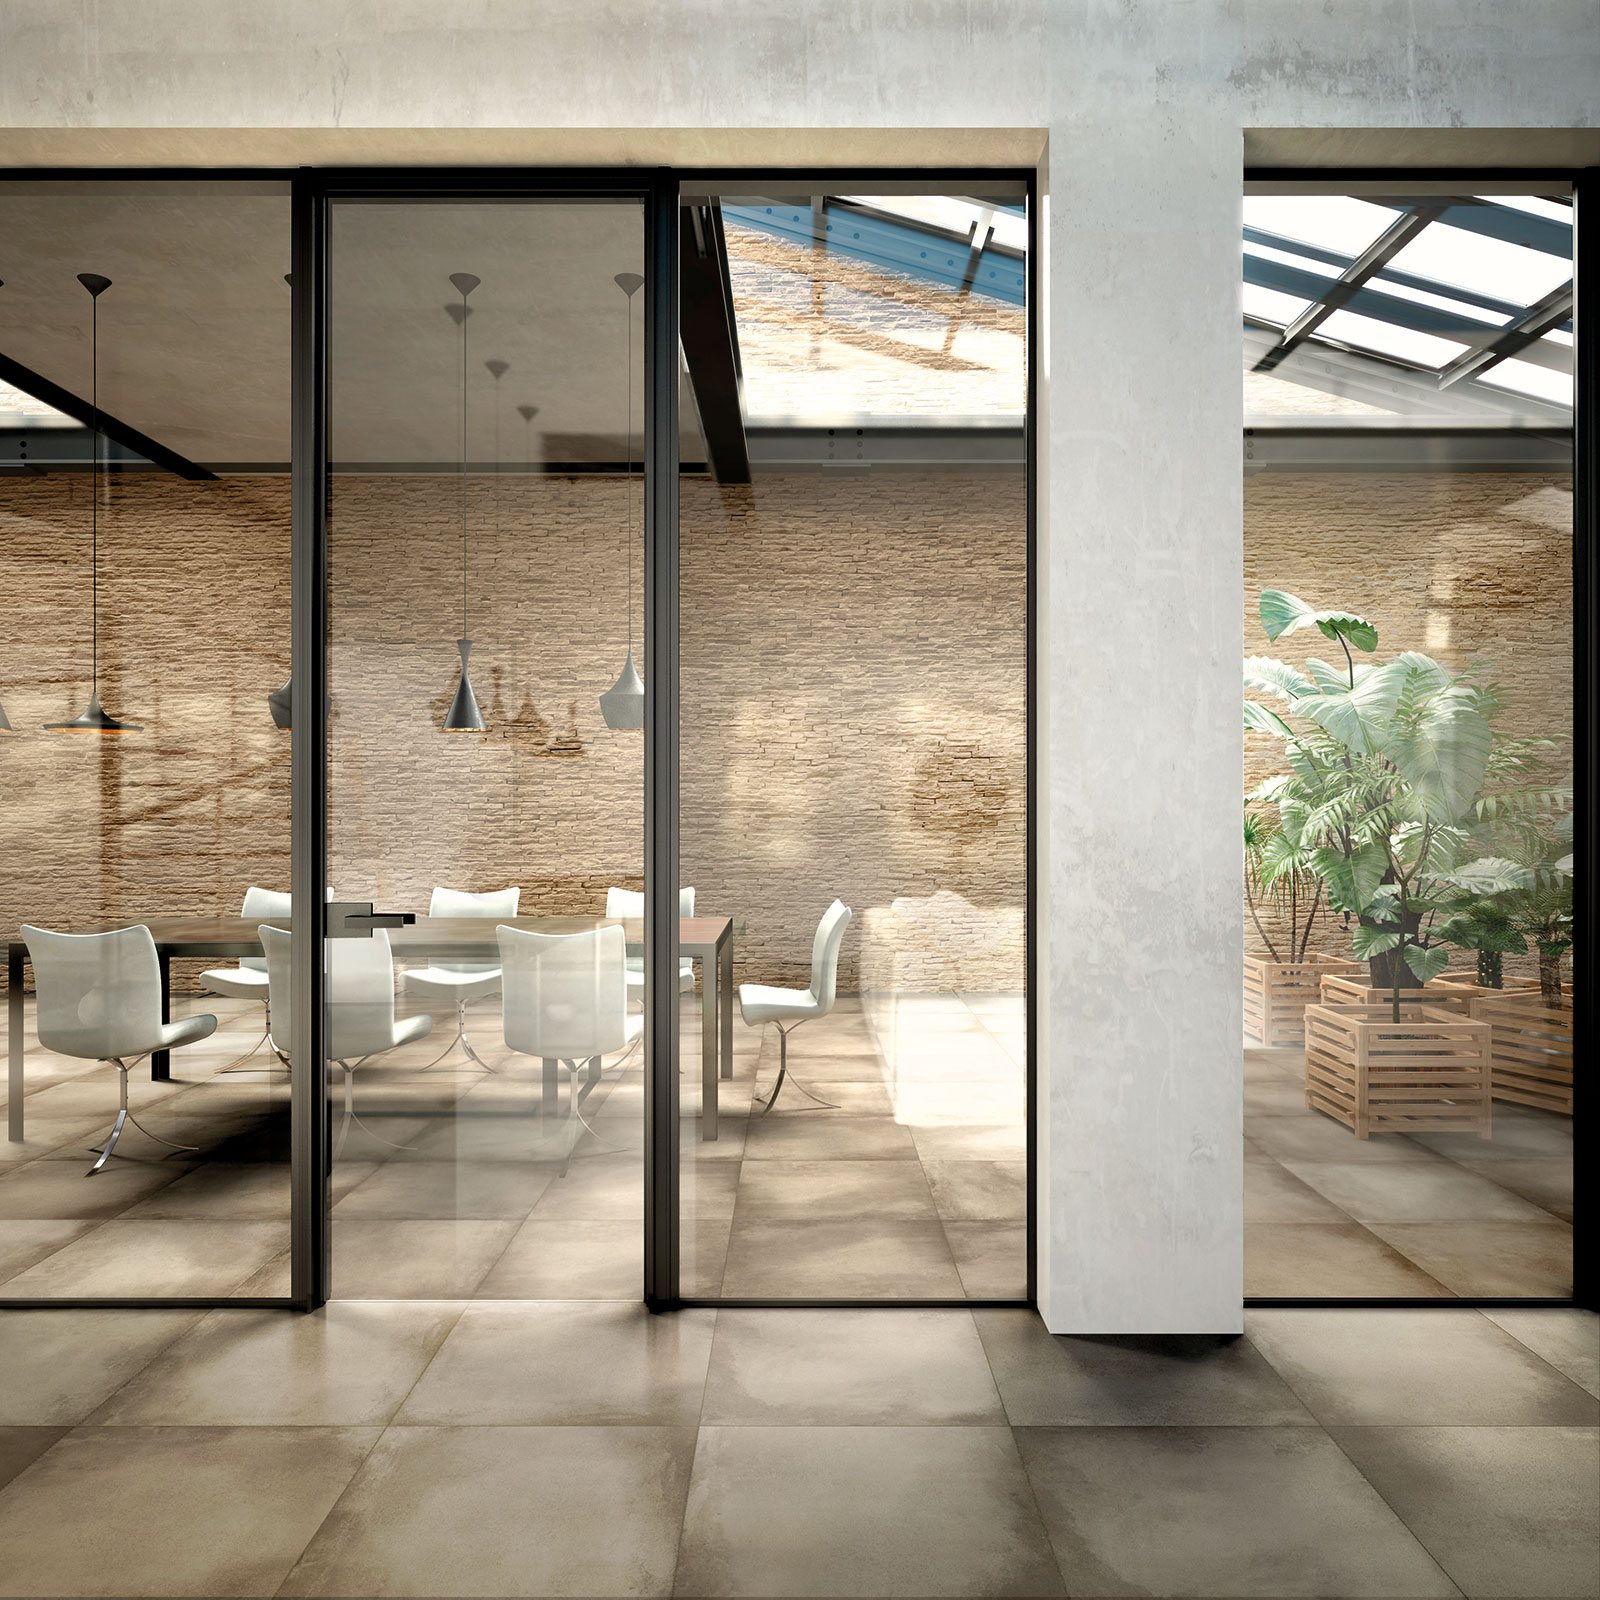 Porte a battente di vetro henry glass swing door combined to fixed glass walls extralight clear glass mocha accessories and profiles mocha isy frame planetlyrics Images